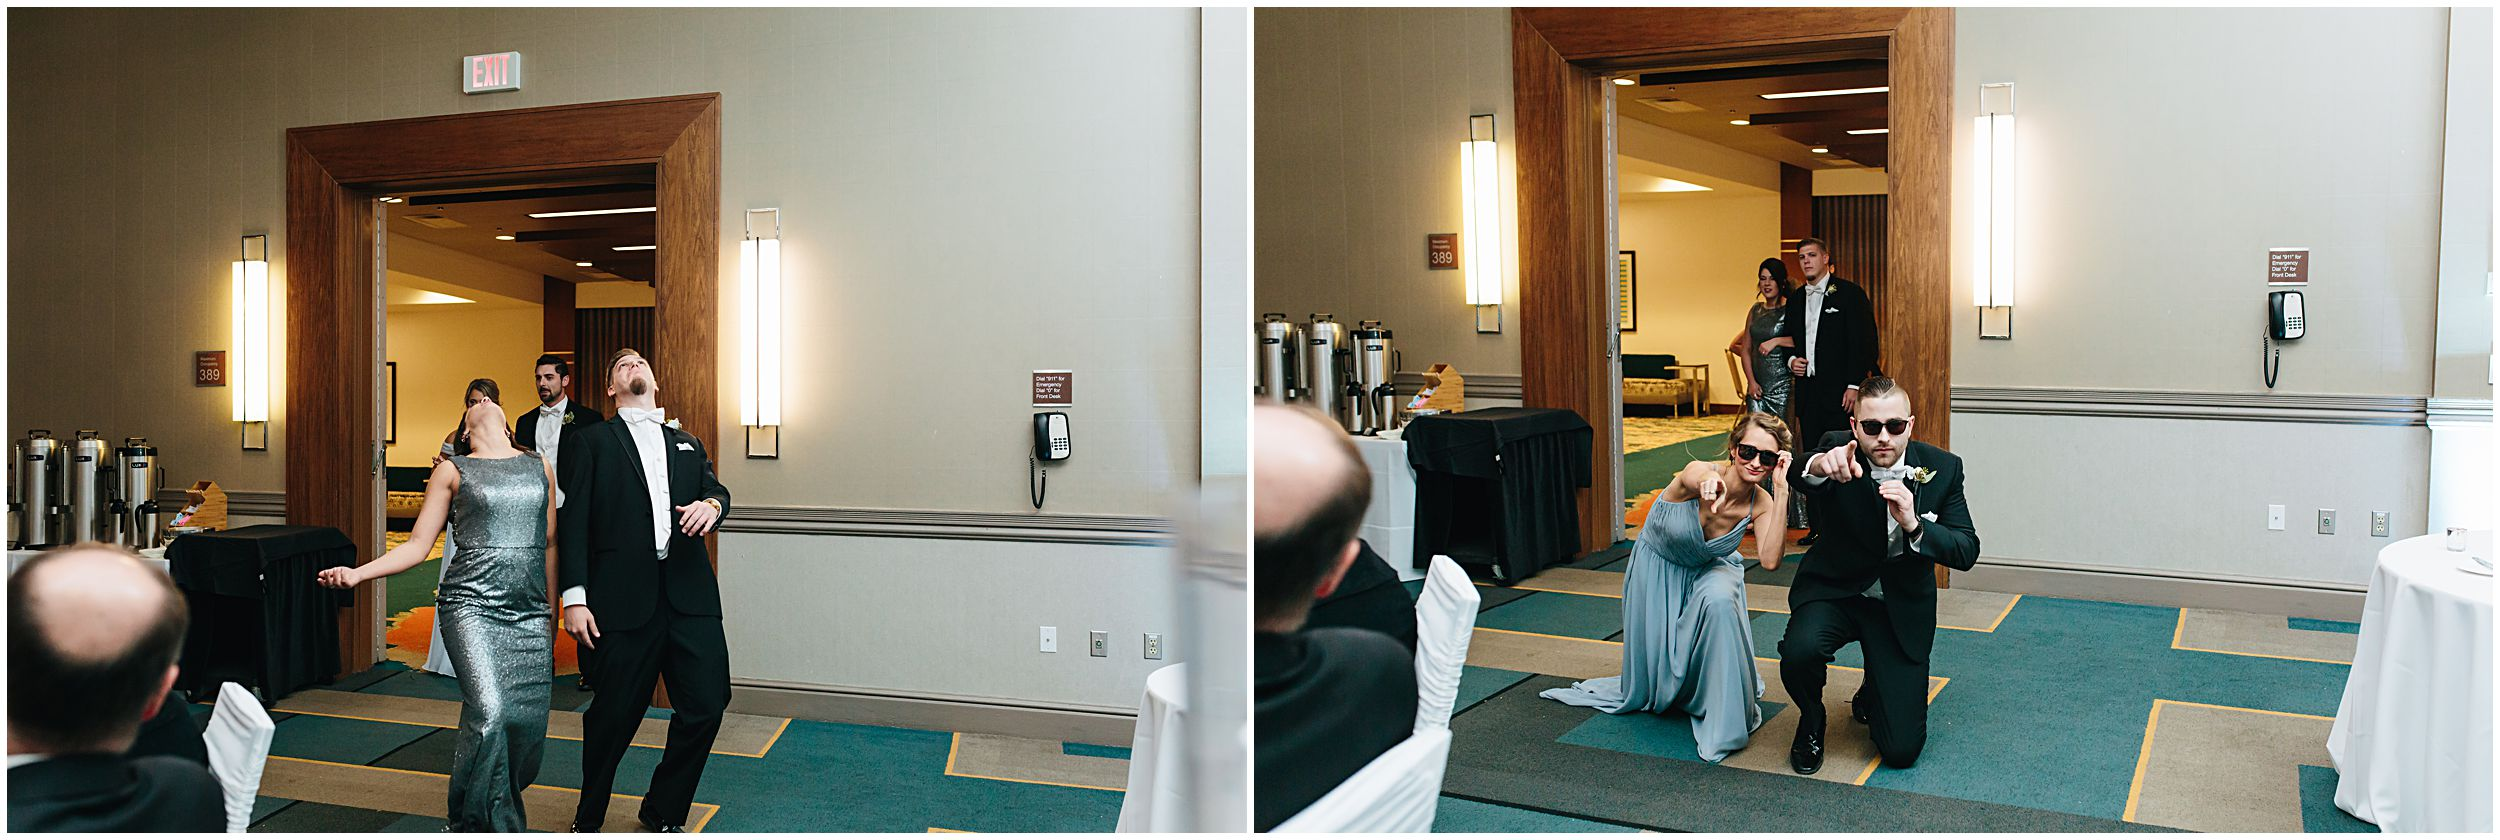 pittsburgh_wedding_photographer_0131.jpg